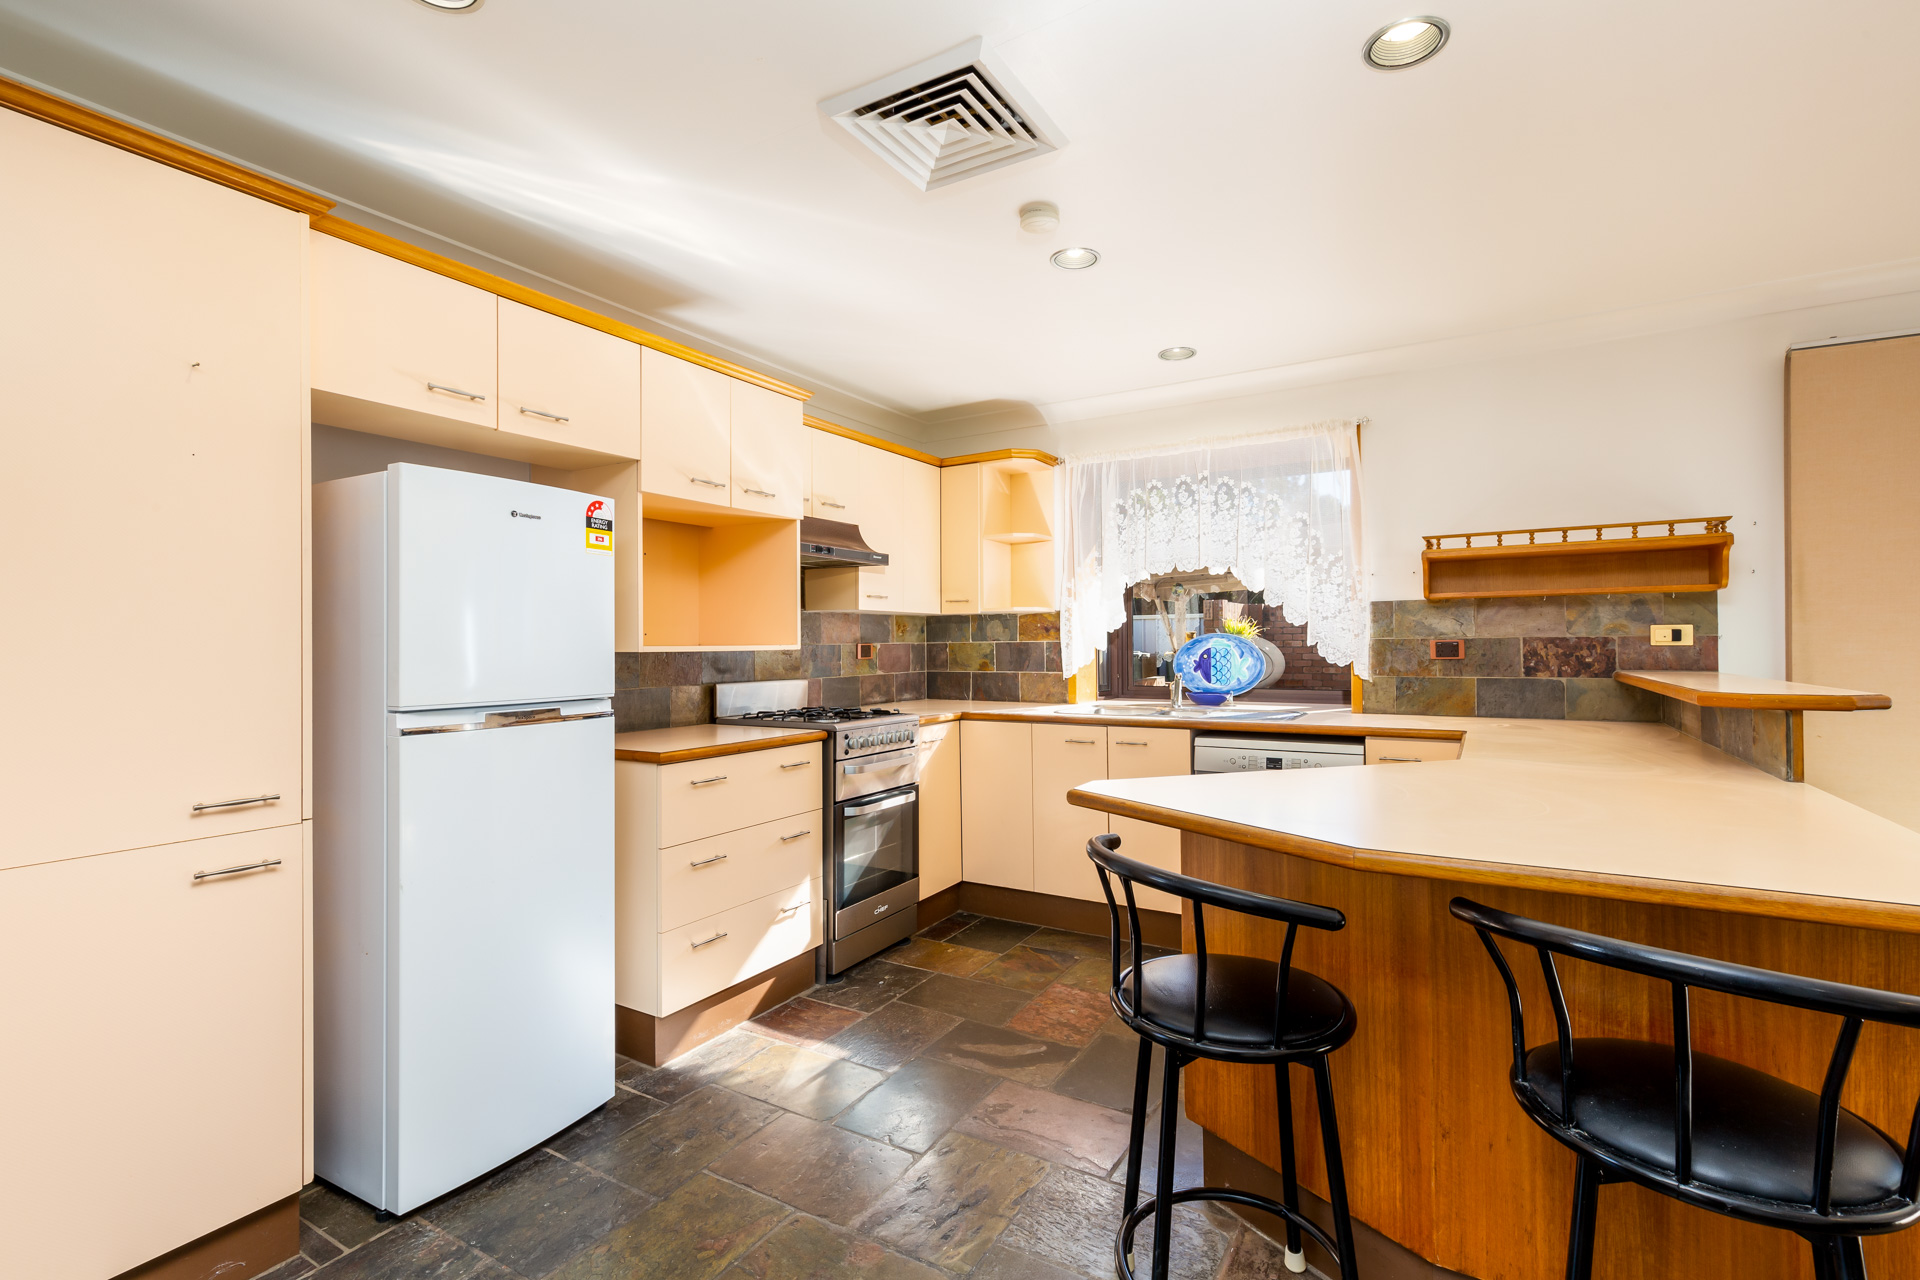 70 Medcalf St   Warners Bay (16 of 18)